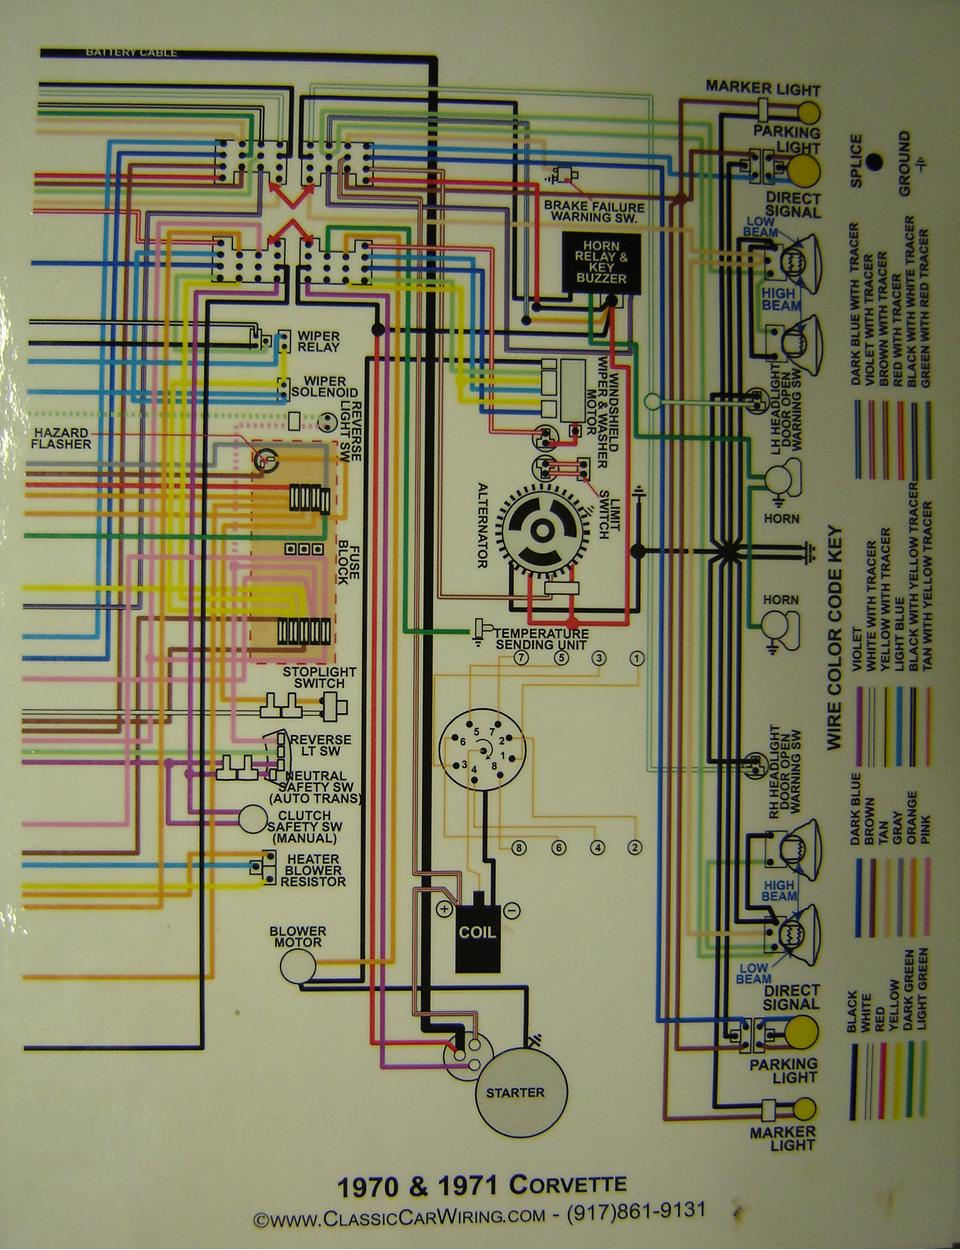 1970-71 corvette color wiring diagram-2 - drawing b  1970 monti carlo - el  camino